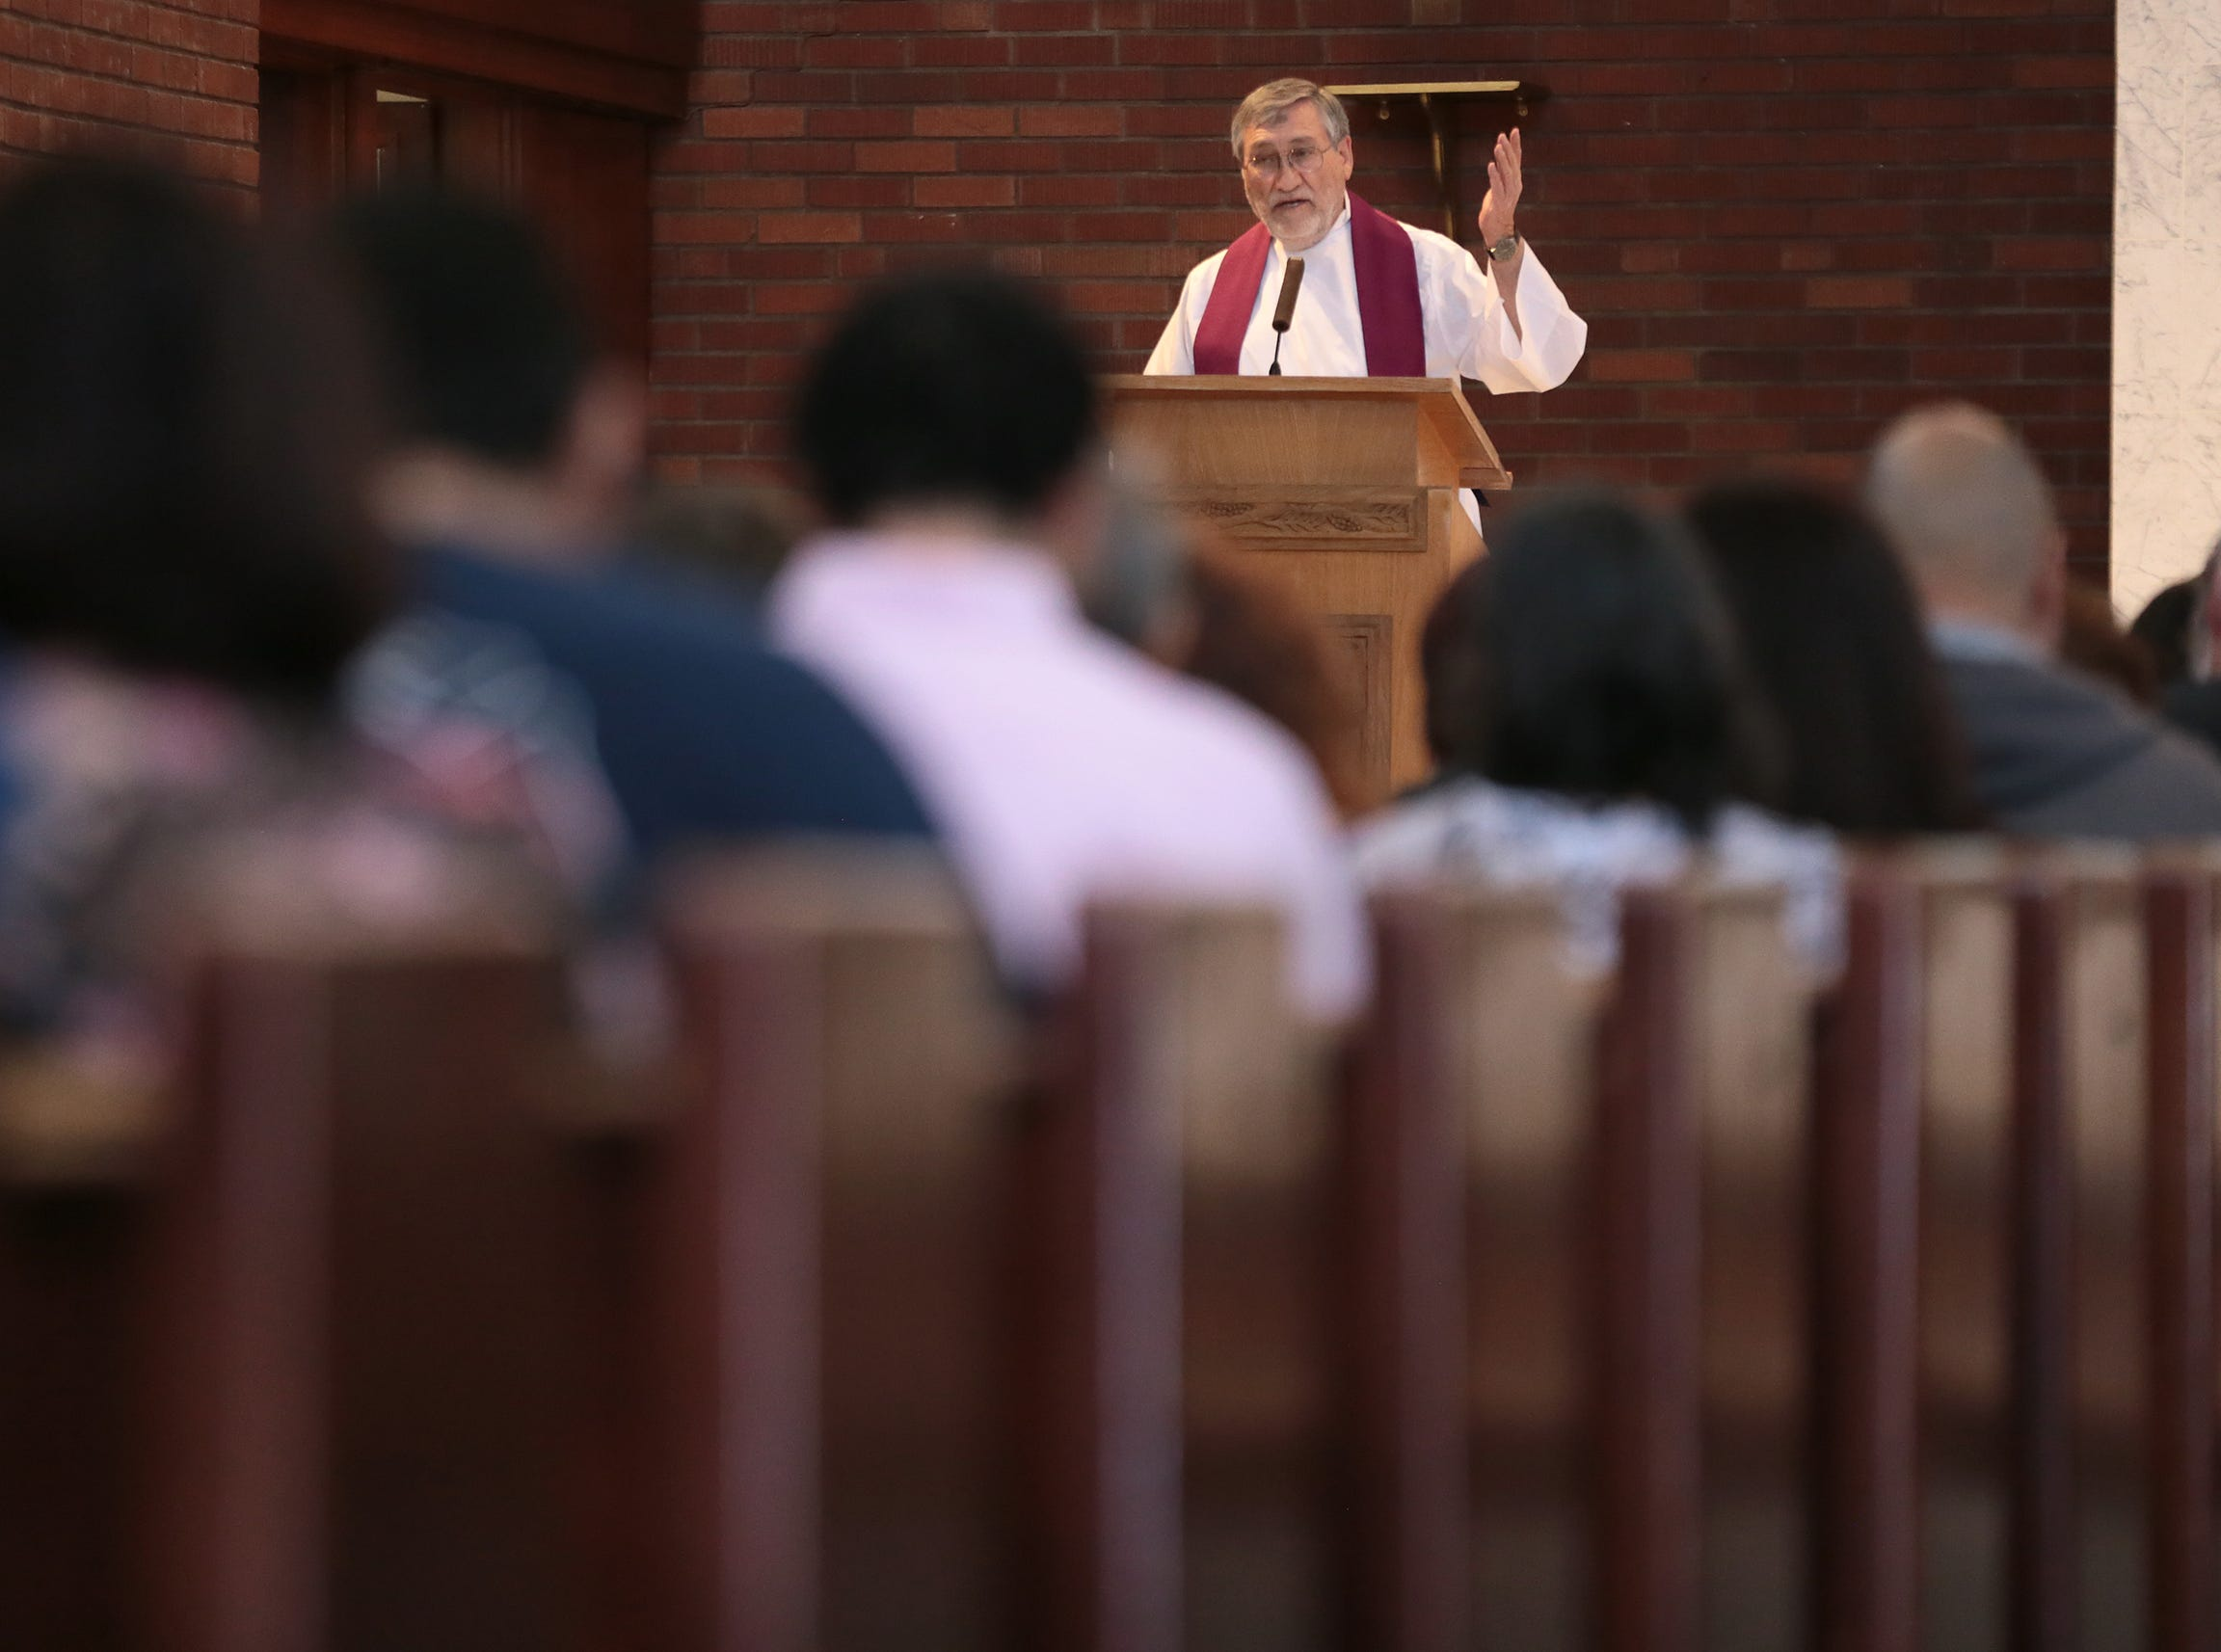 Father Ed Carpenter held several Ash Wednesday services at the central El Paso church. Catholic faithful celebrated Ash Wednesday--the start of the Lenten season.